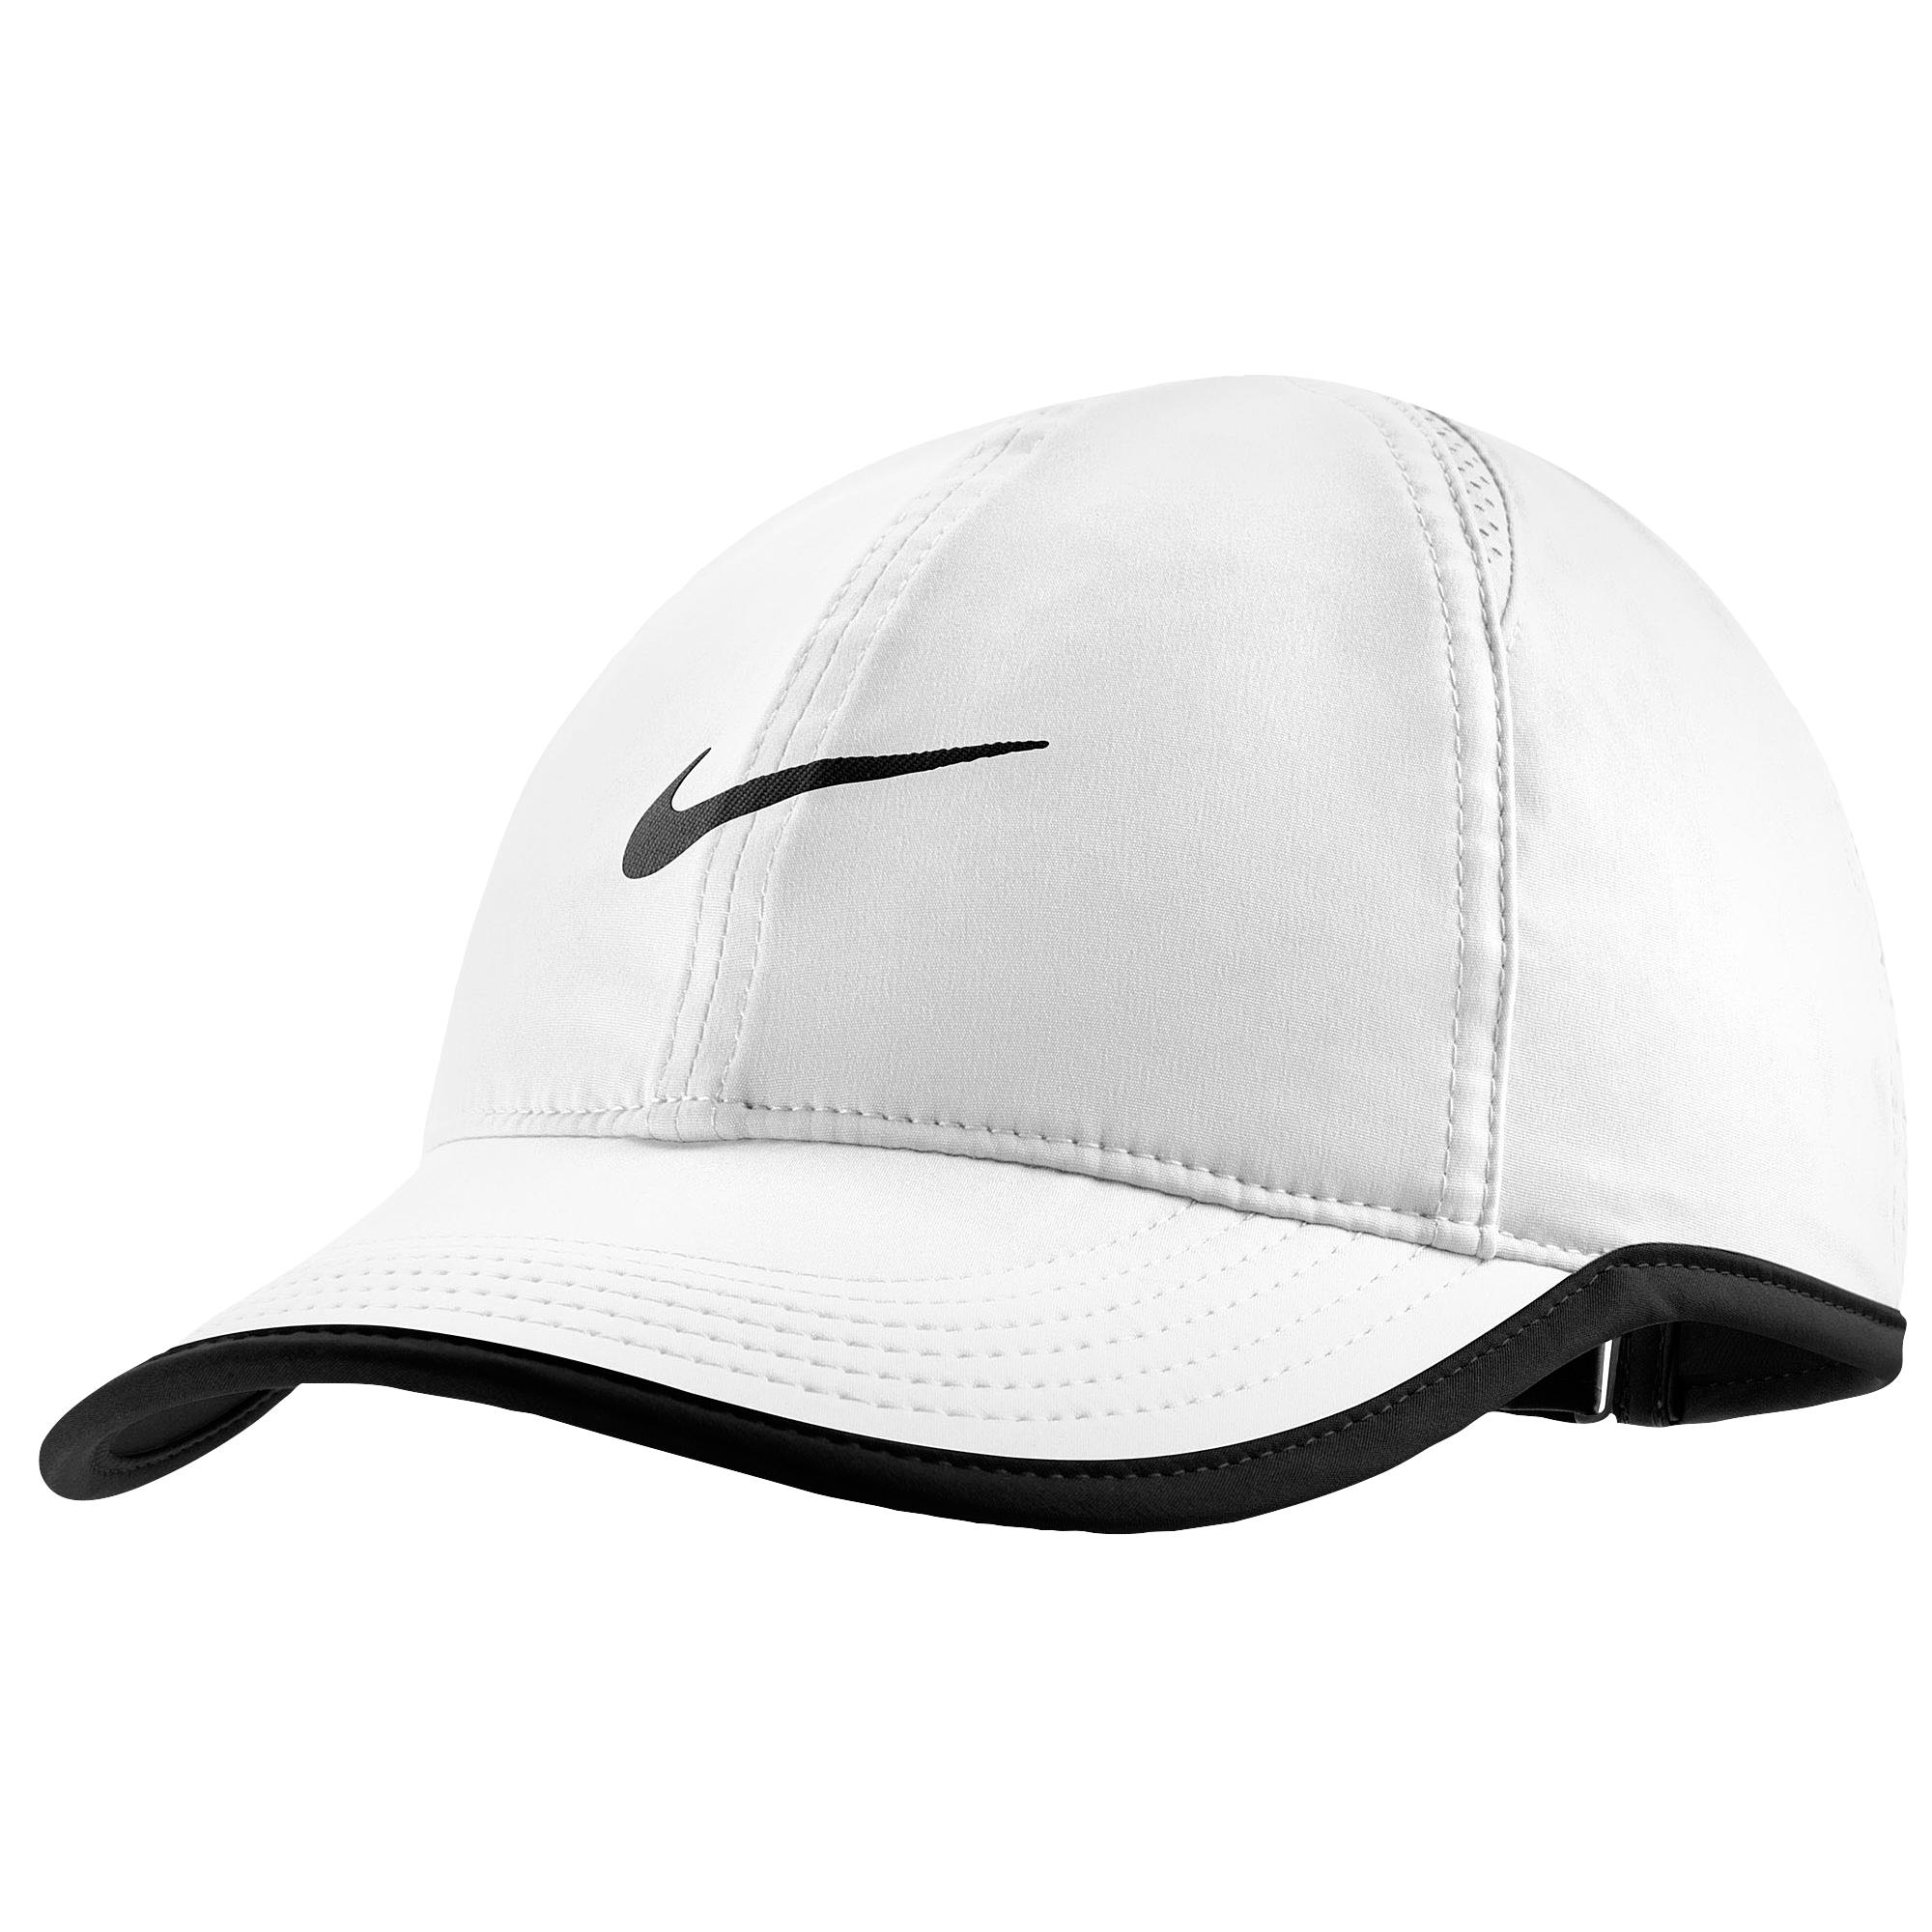 Lyst - Nike Dri-fit Featherlight Cap in White for Men 465d76f26eb5